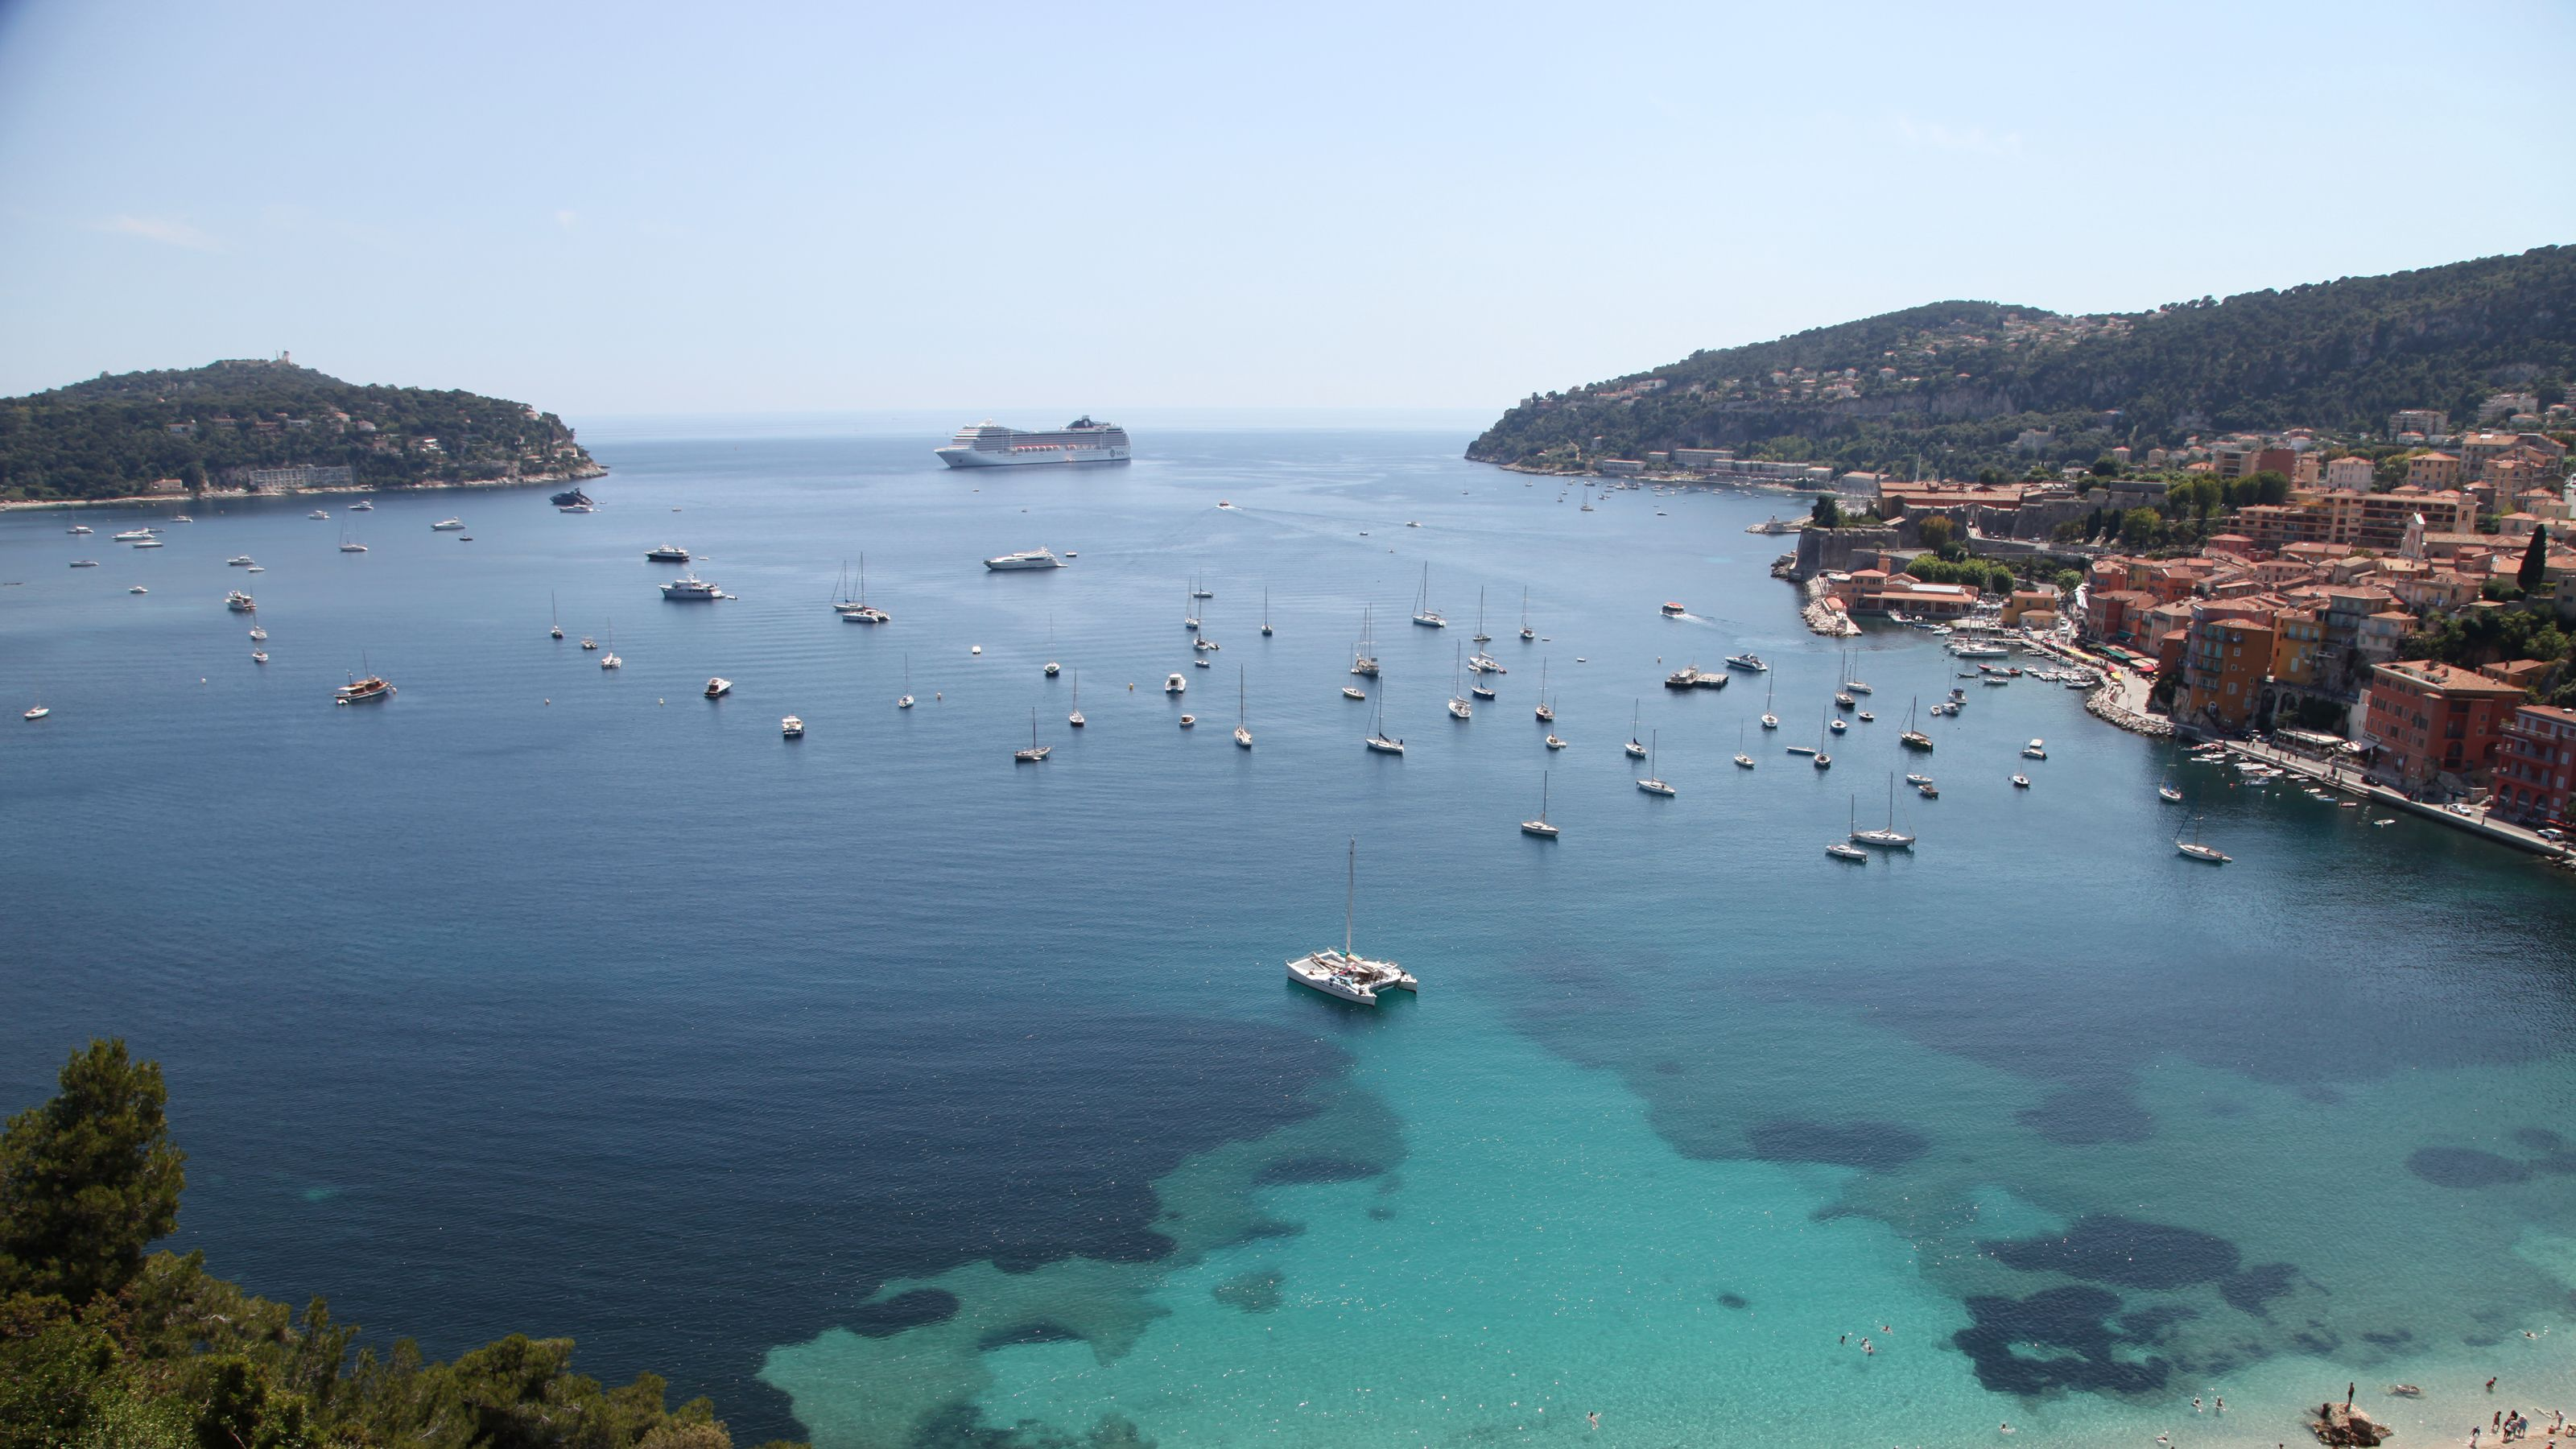 Scattered boats and cruise ship on the clear water in France